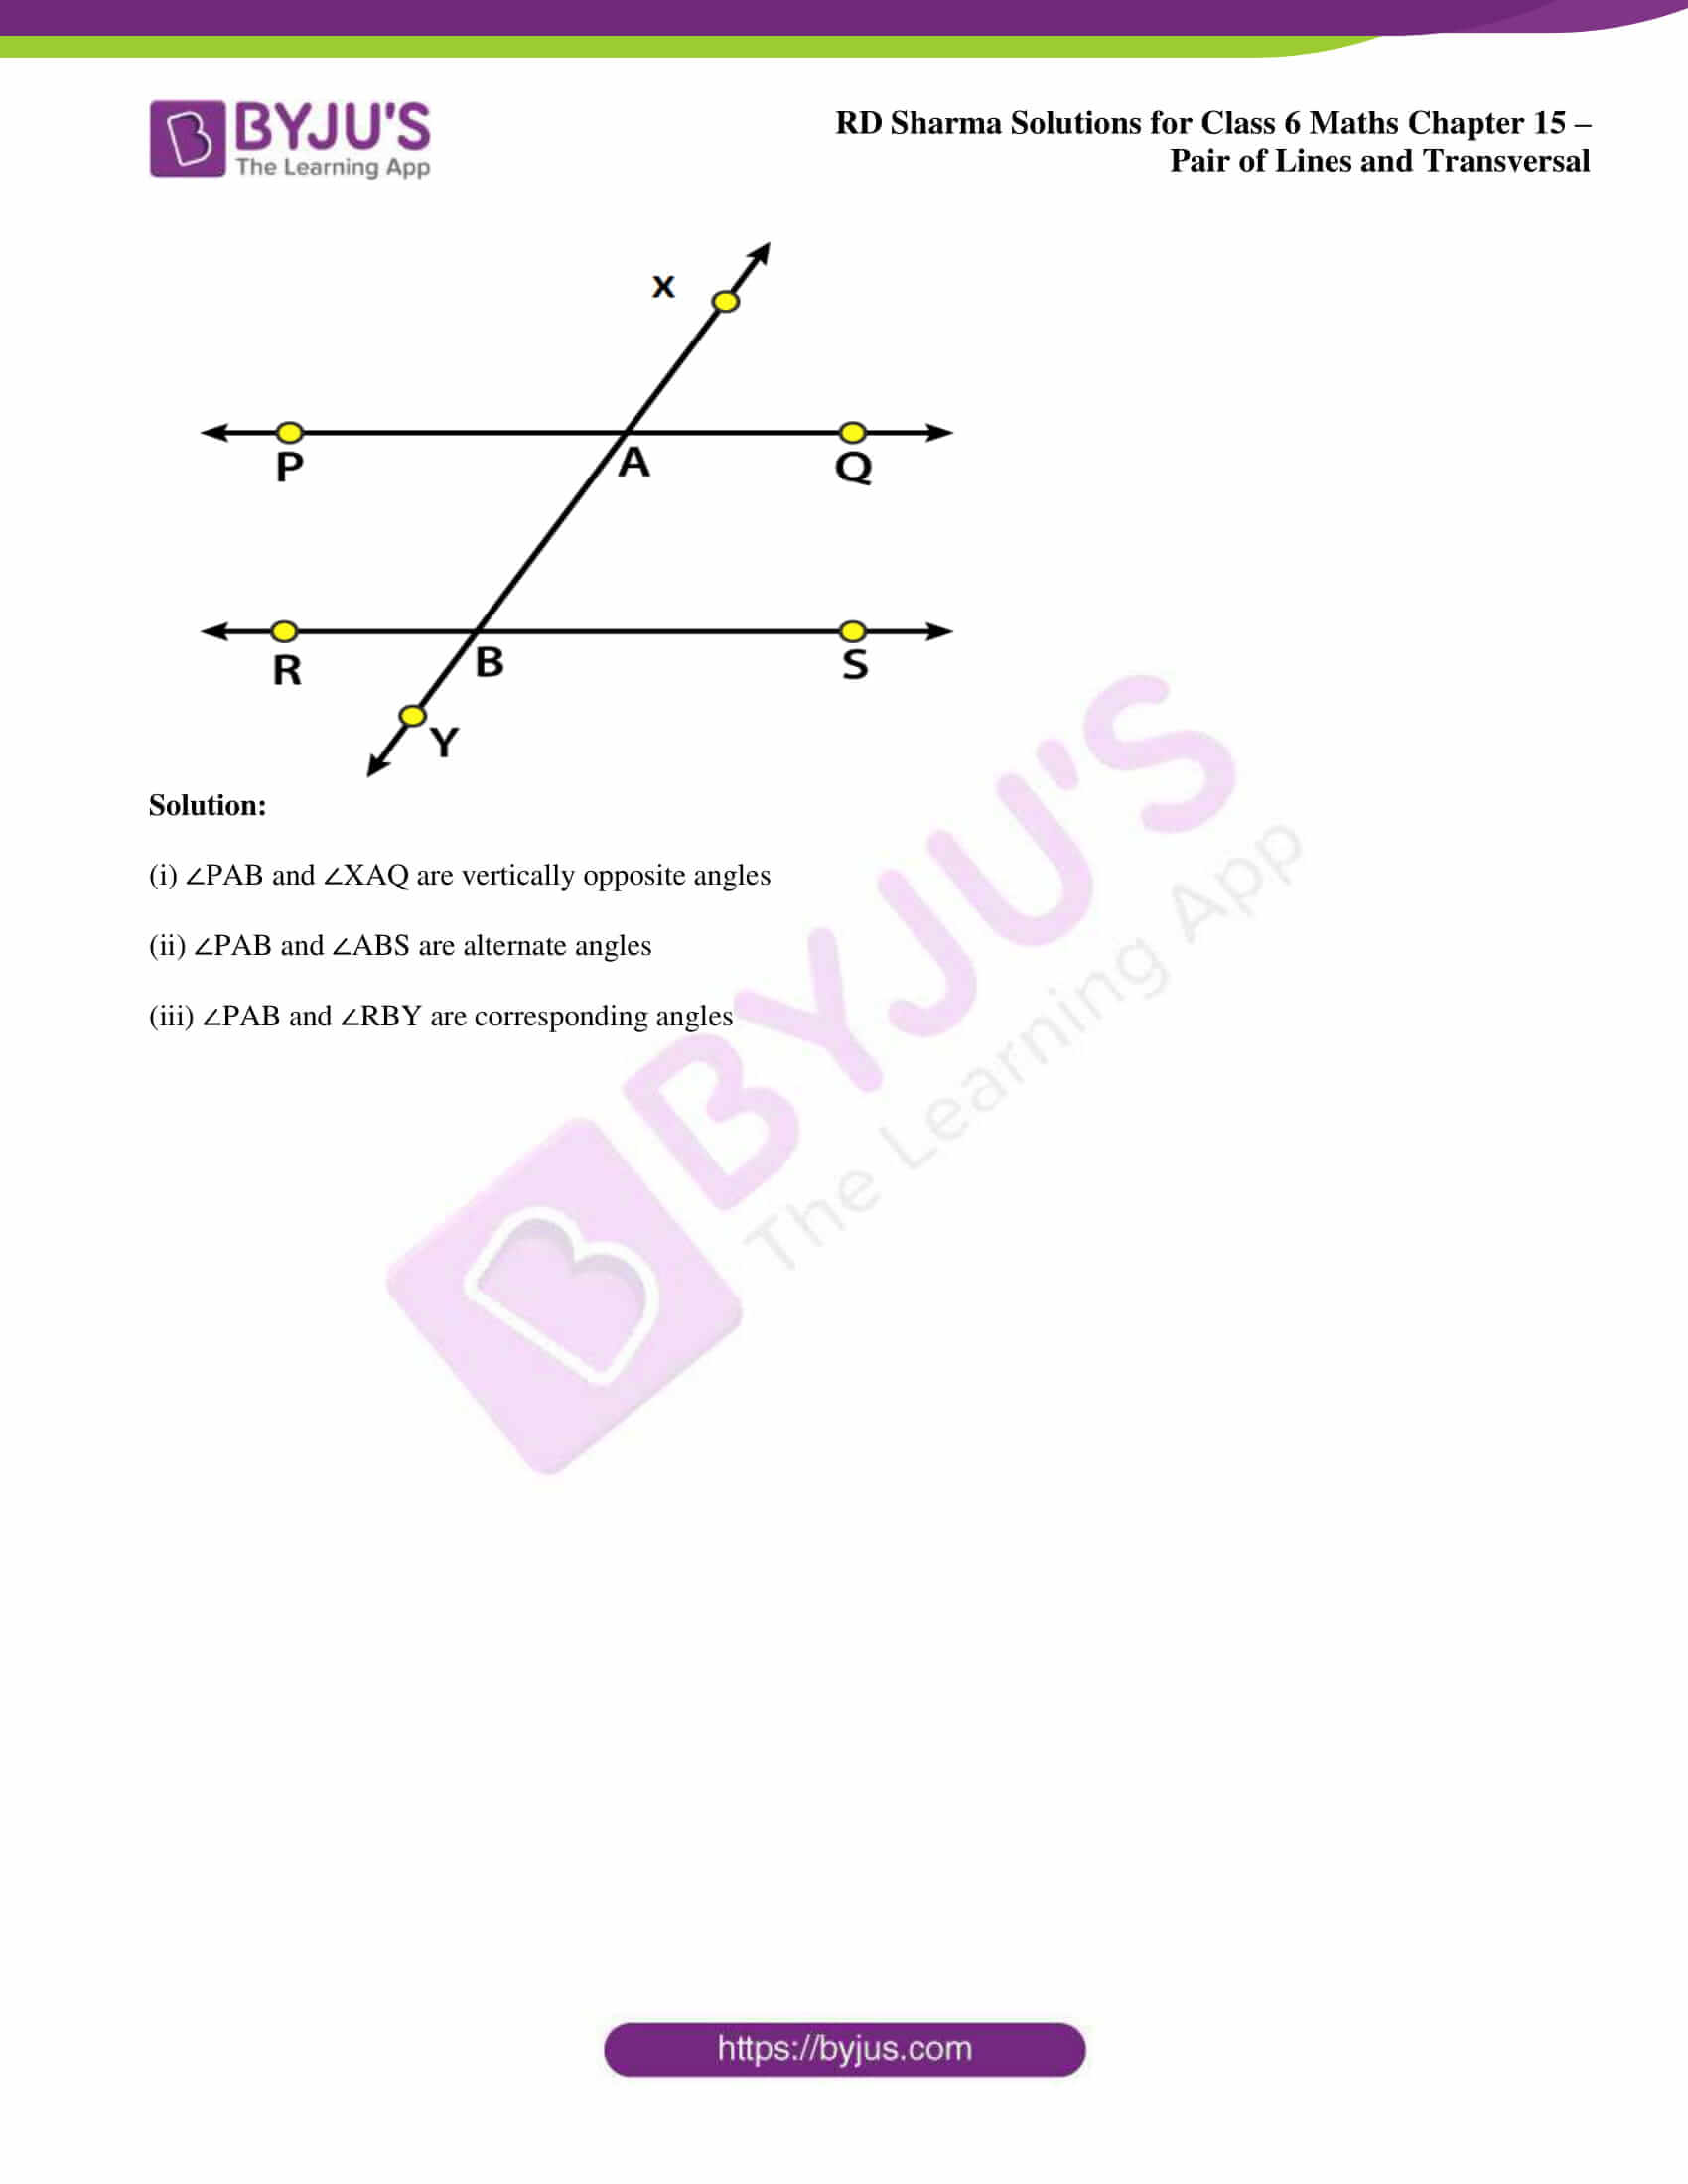 rd sharma solutions nov2020 class 6 maths chapter 15 exercise 2 2